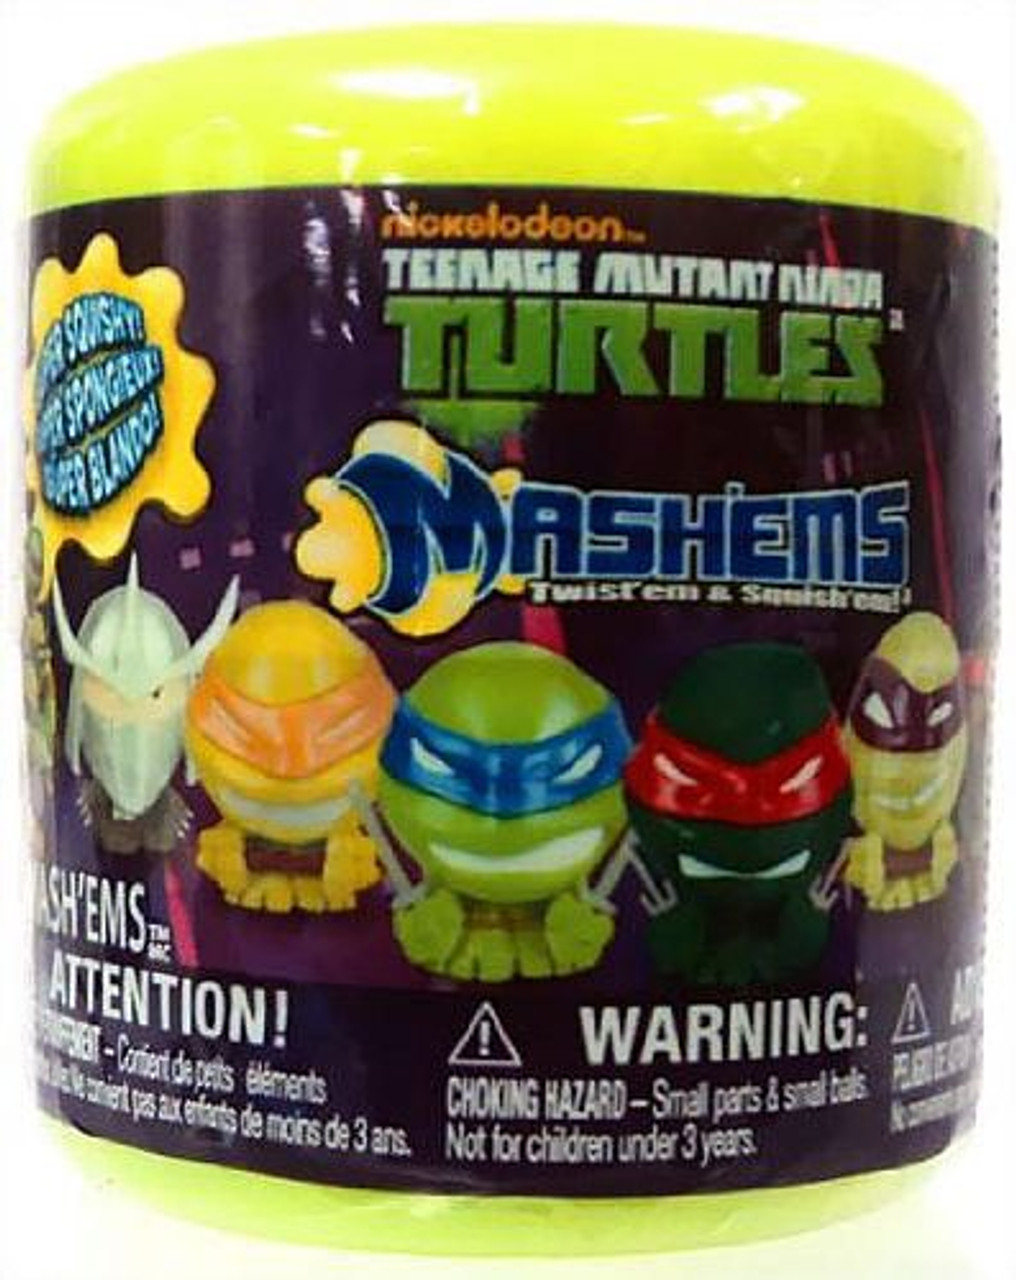 Teenage Mutant Ninja Turtles TMNT Series 1 Mash'Ems Mystery Pack